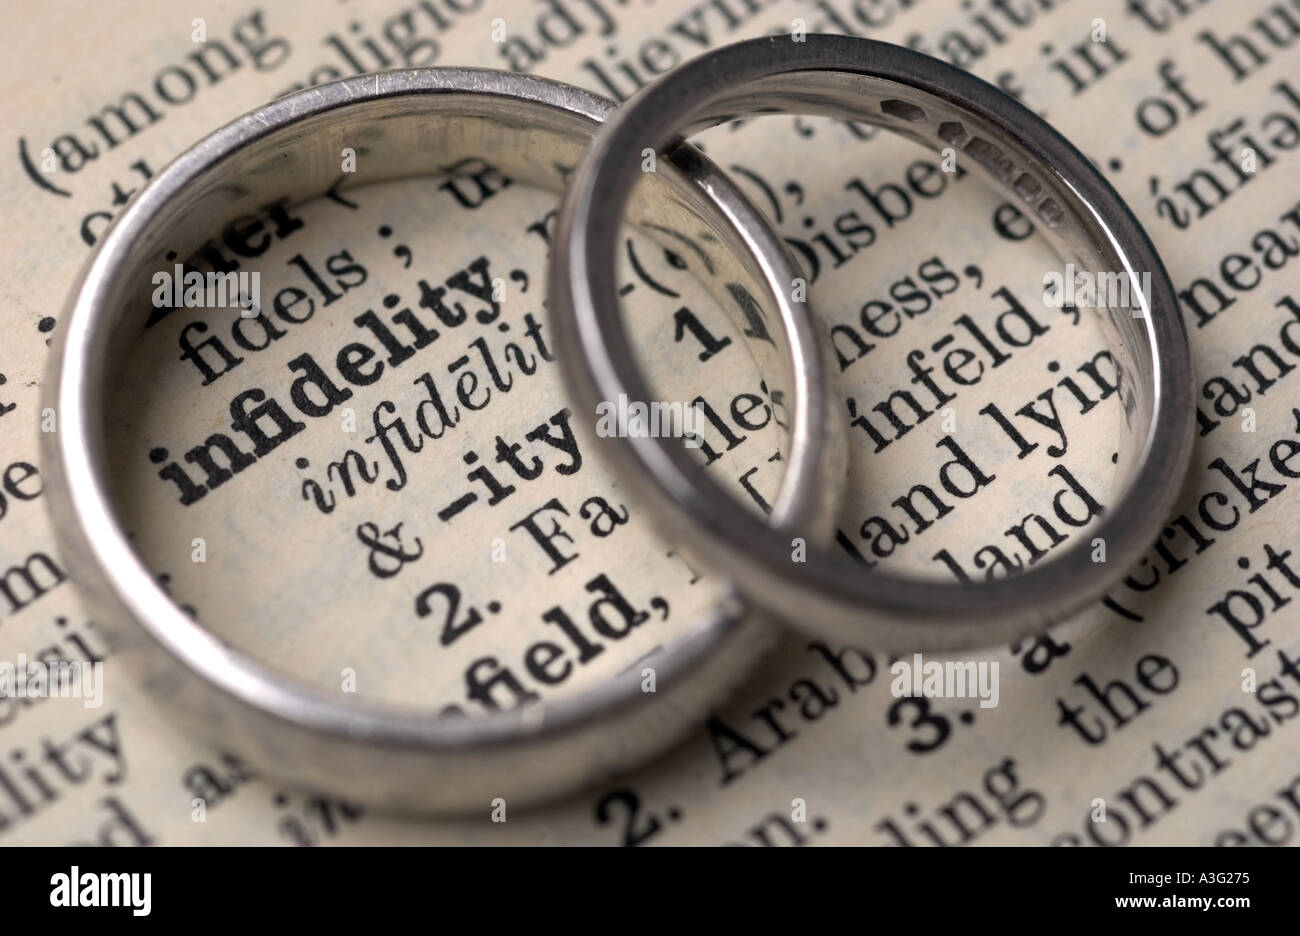 Wedding rings on a dictionary showing the word infidelity - Stock Image